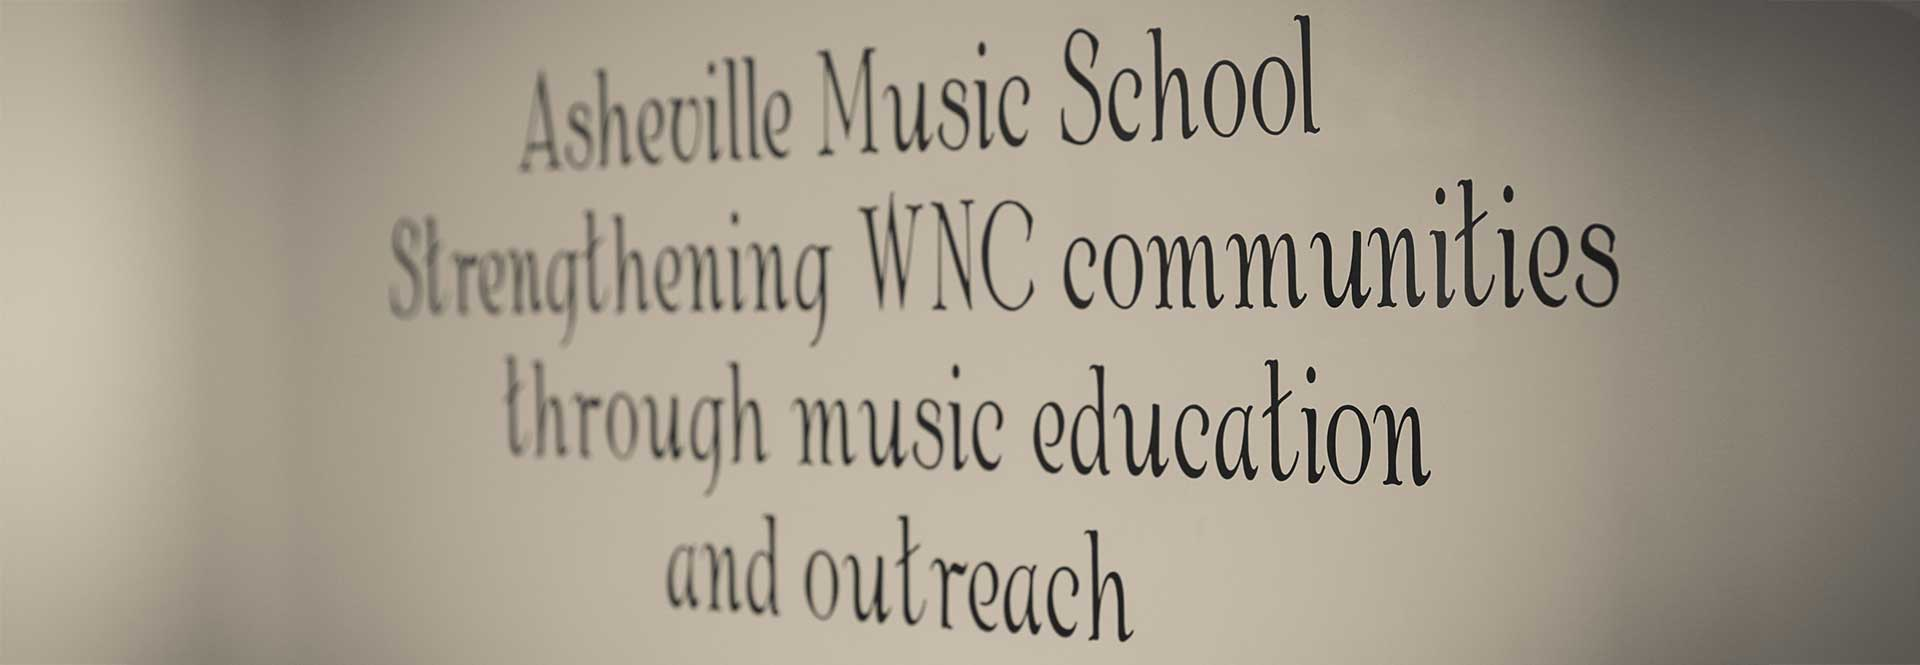 Asheville Music School Mission Statement on wall